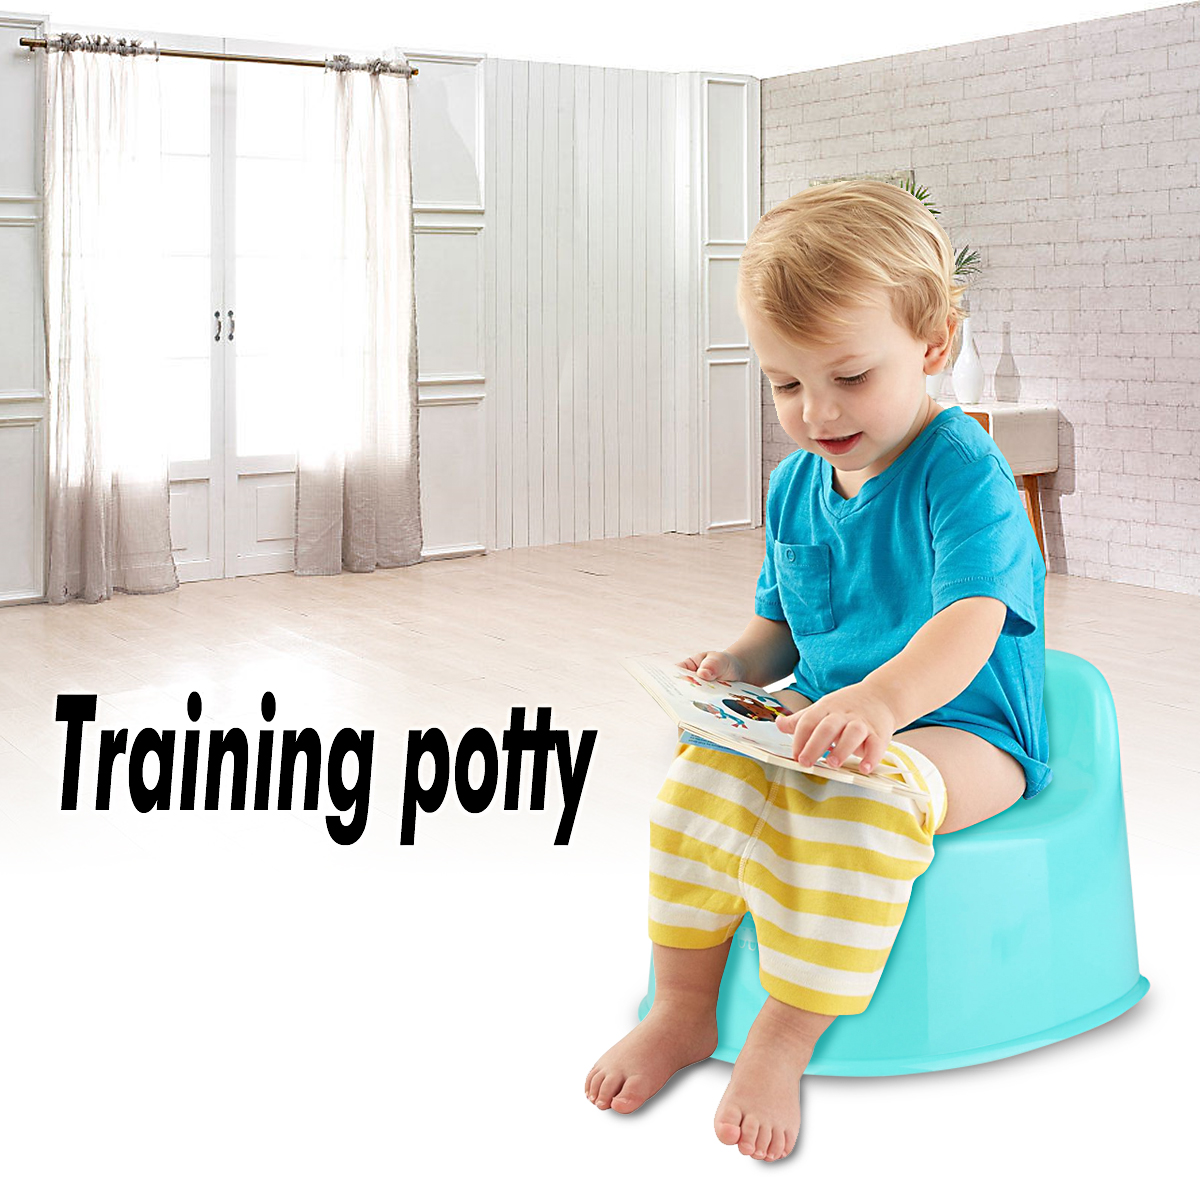 Children Kids Girl Toddler Baby Training Potty Toilet Seat Chair Pee Trainer,Light Blue color